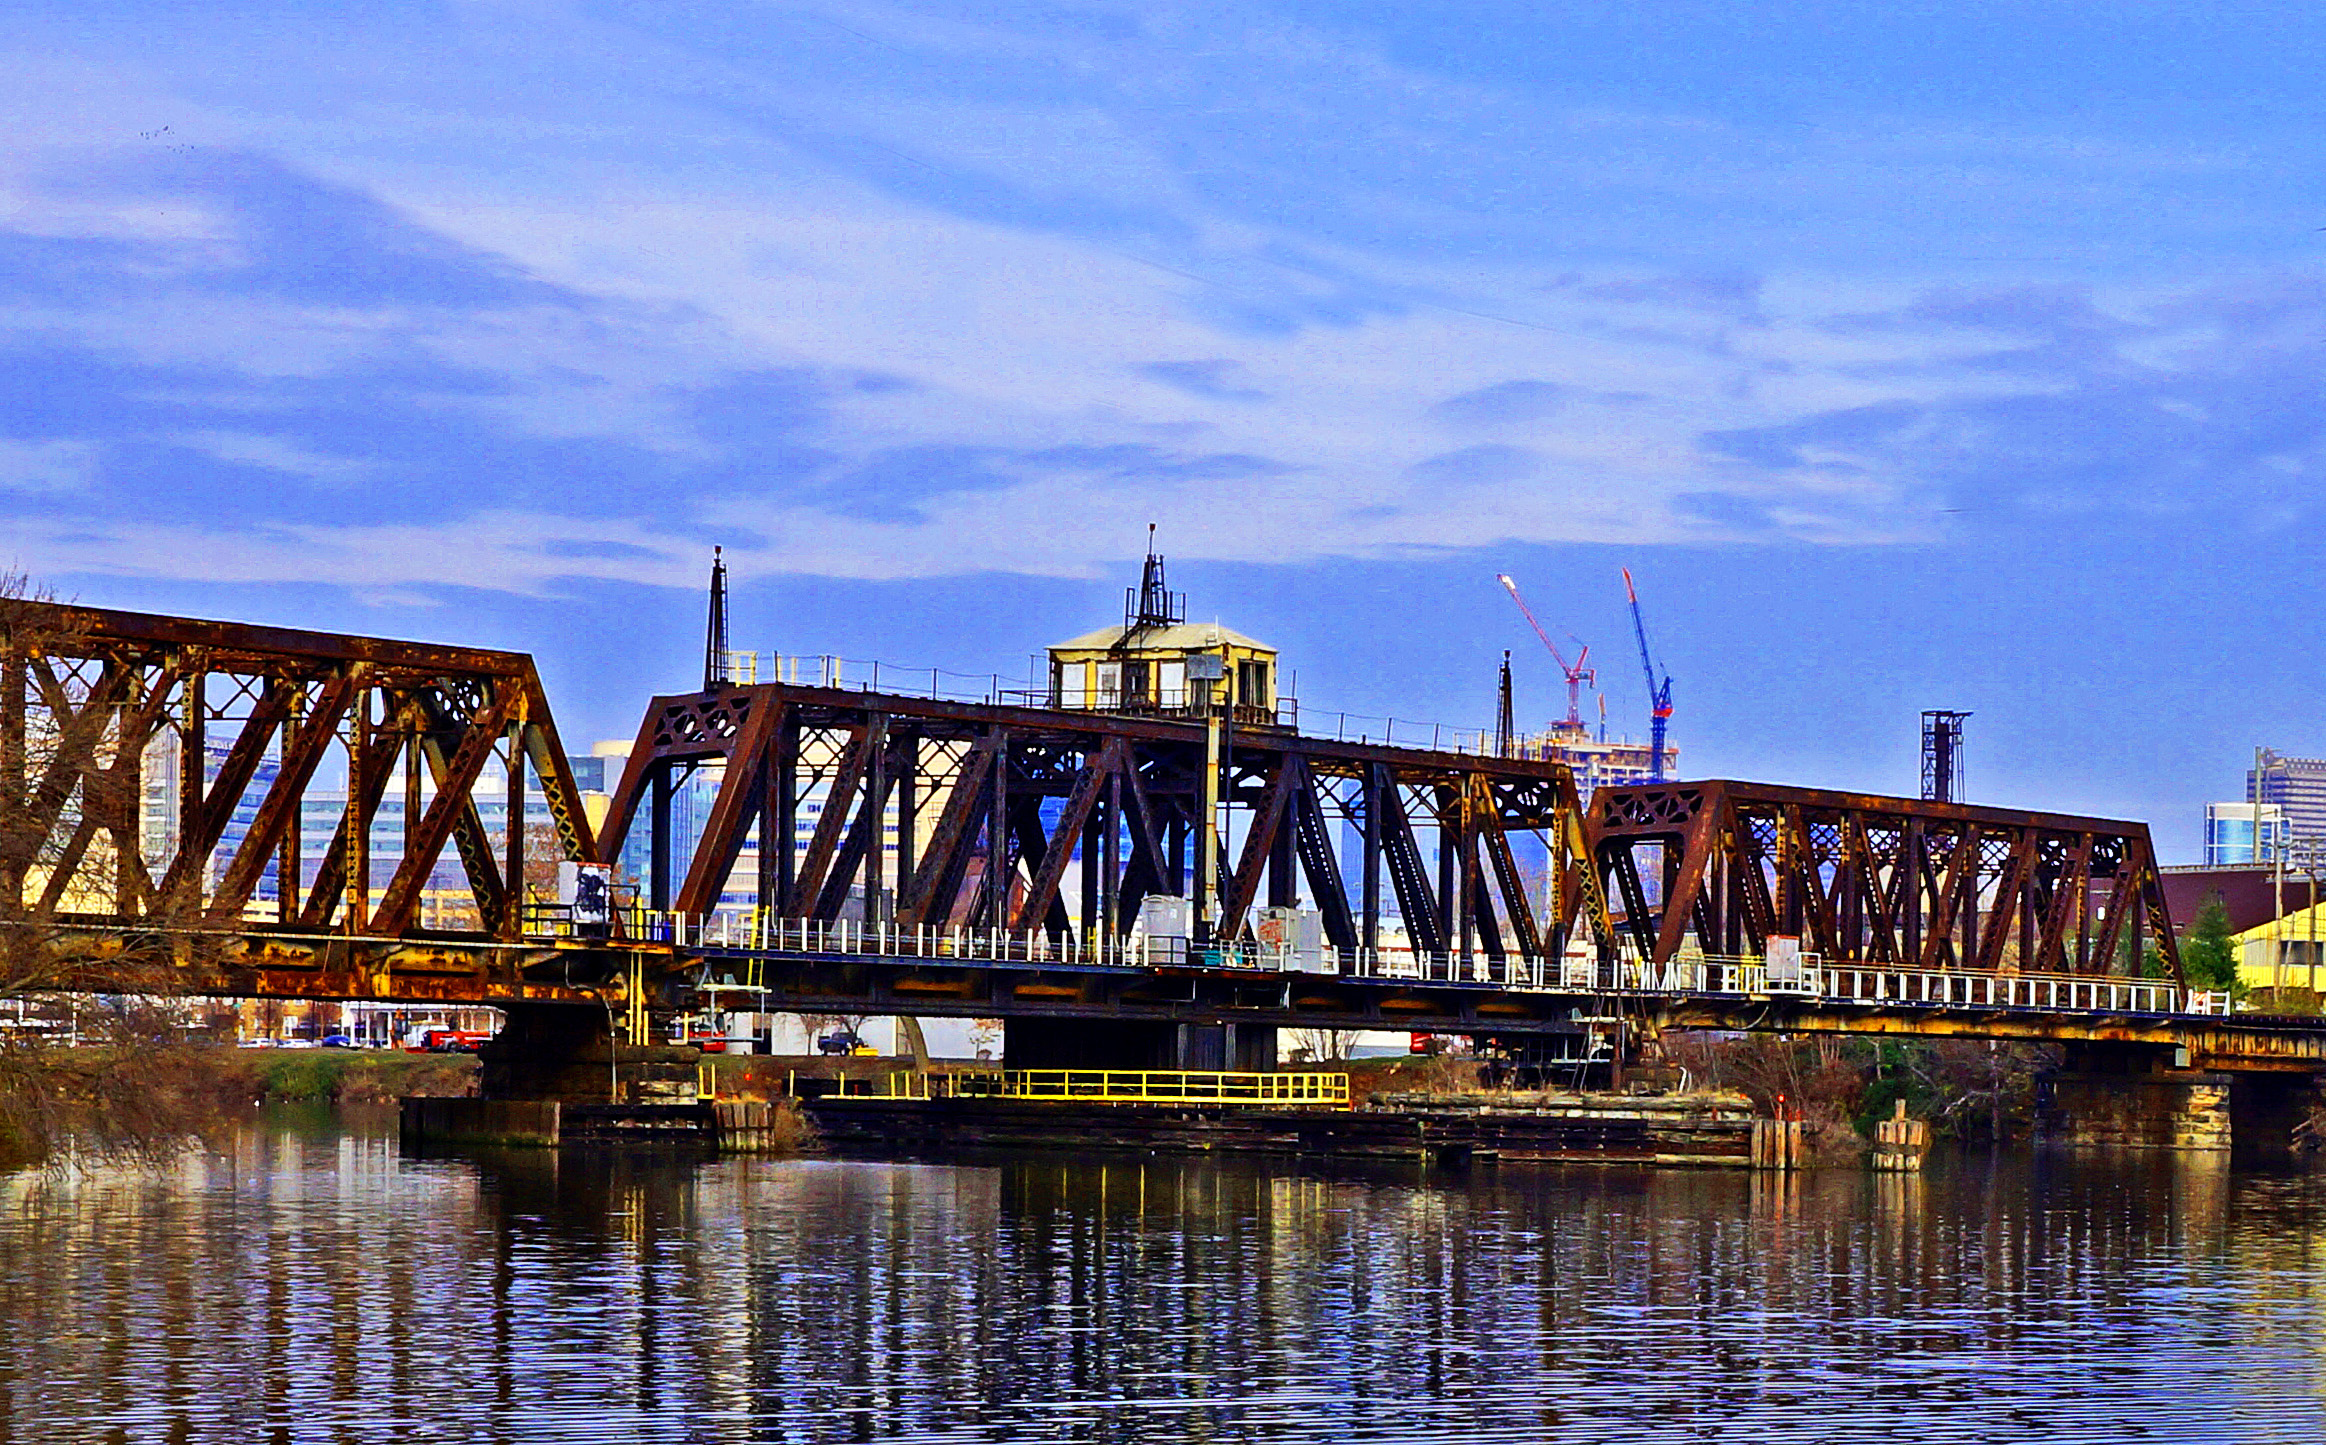 Railway Swing Bridge Over Schuylkill River